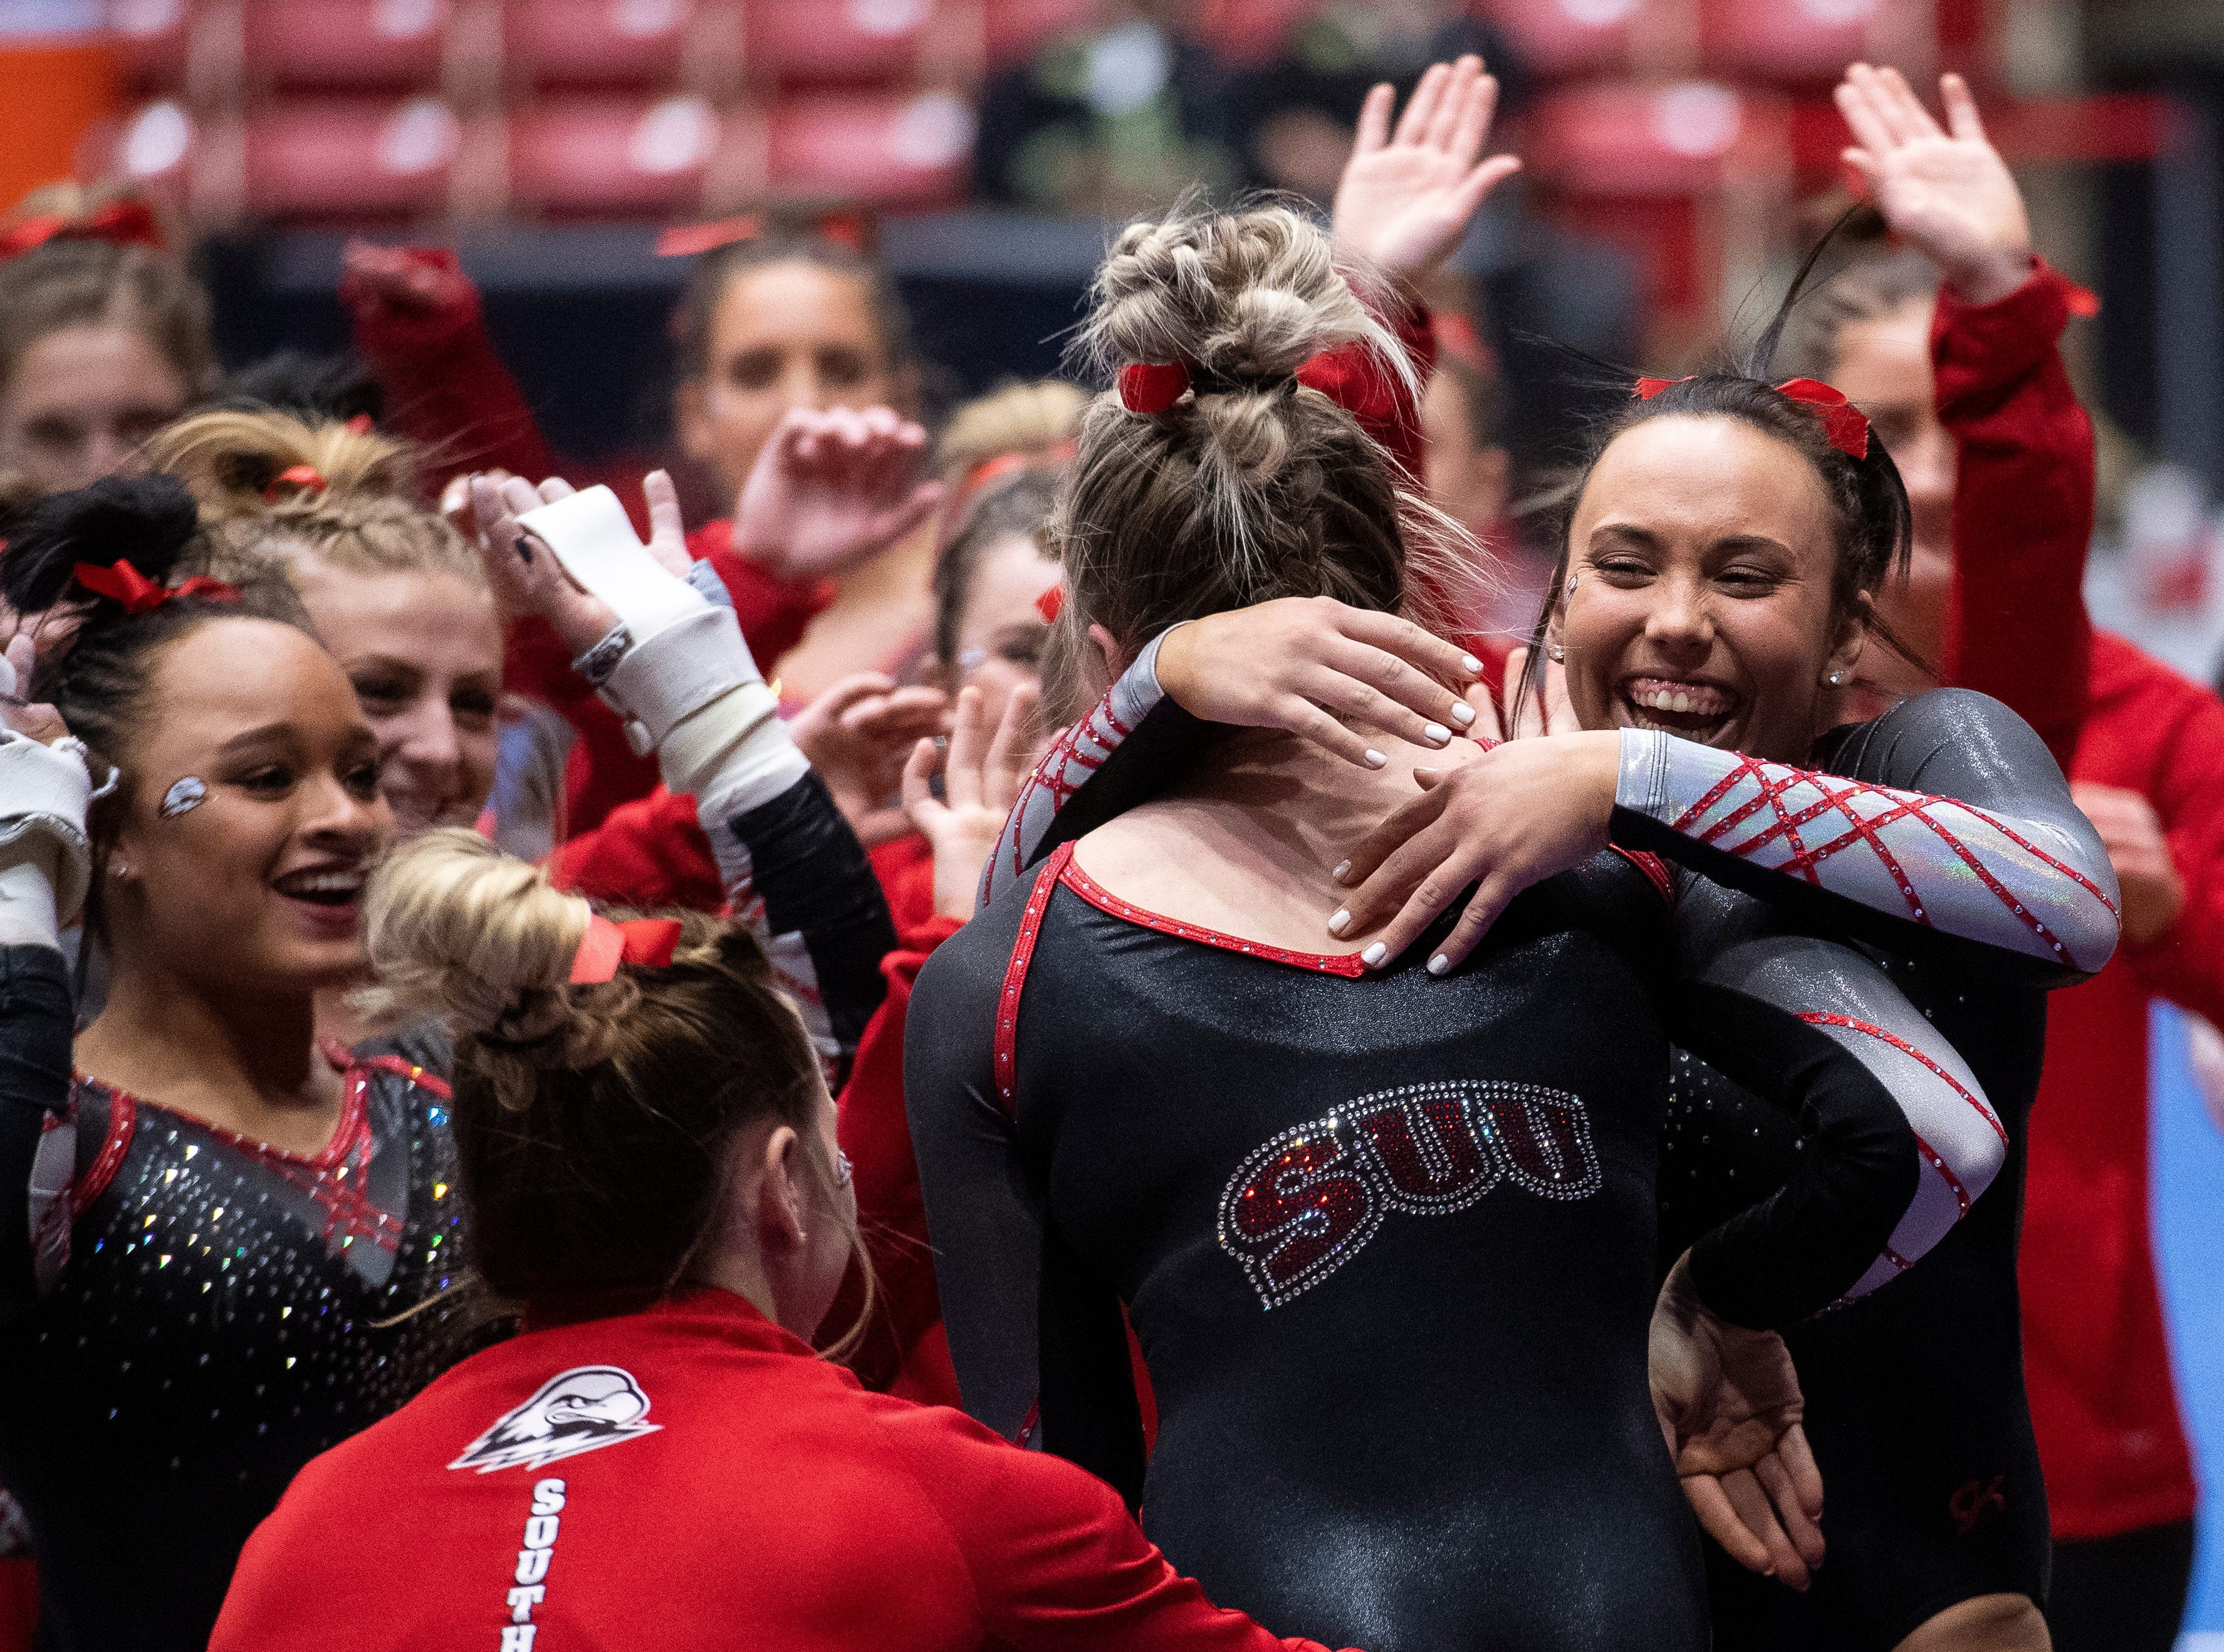 The Flippin' Birds celebrate after freshman Stephanie Tervort competes on the vault against Boise State at the America First Event Center Friday, January 18, 2019.